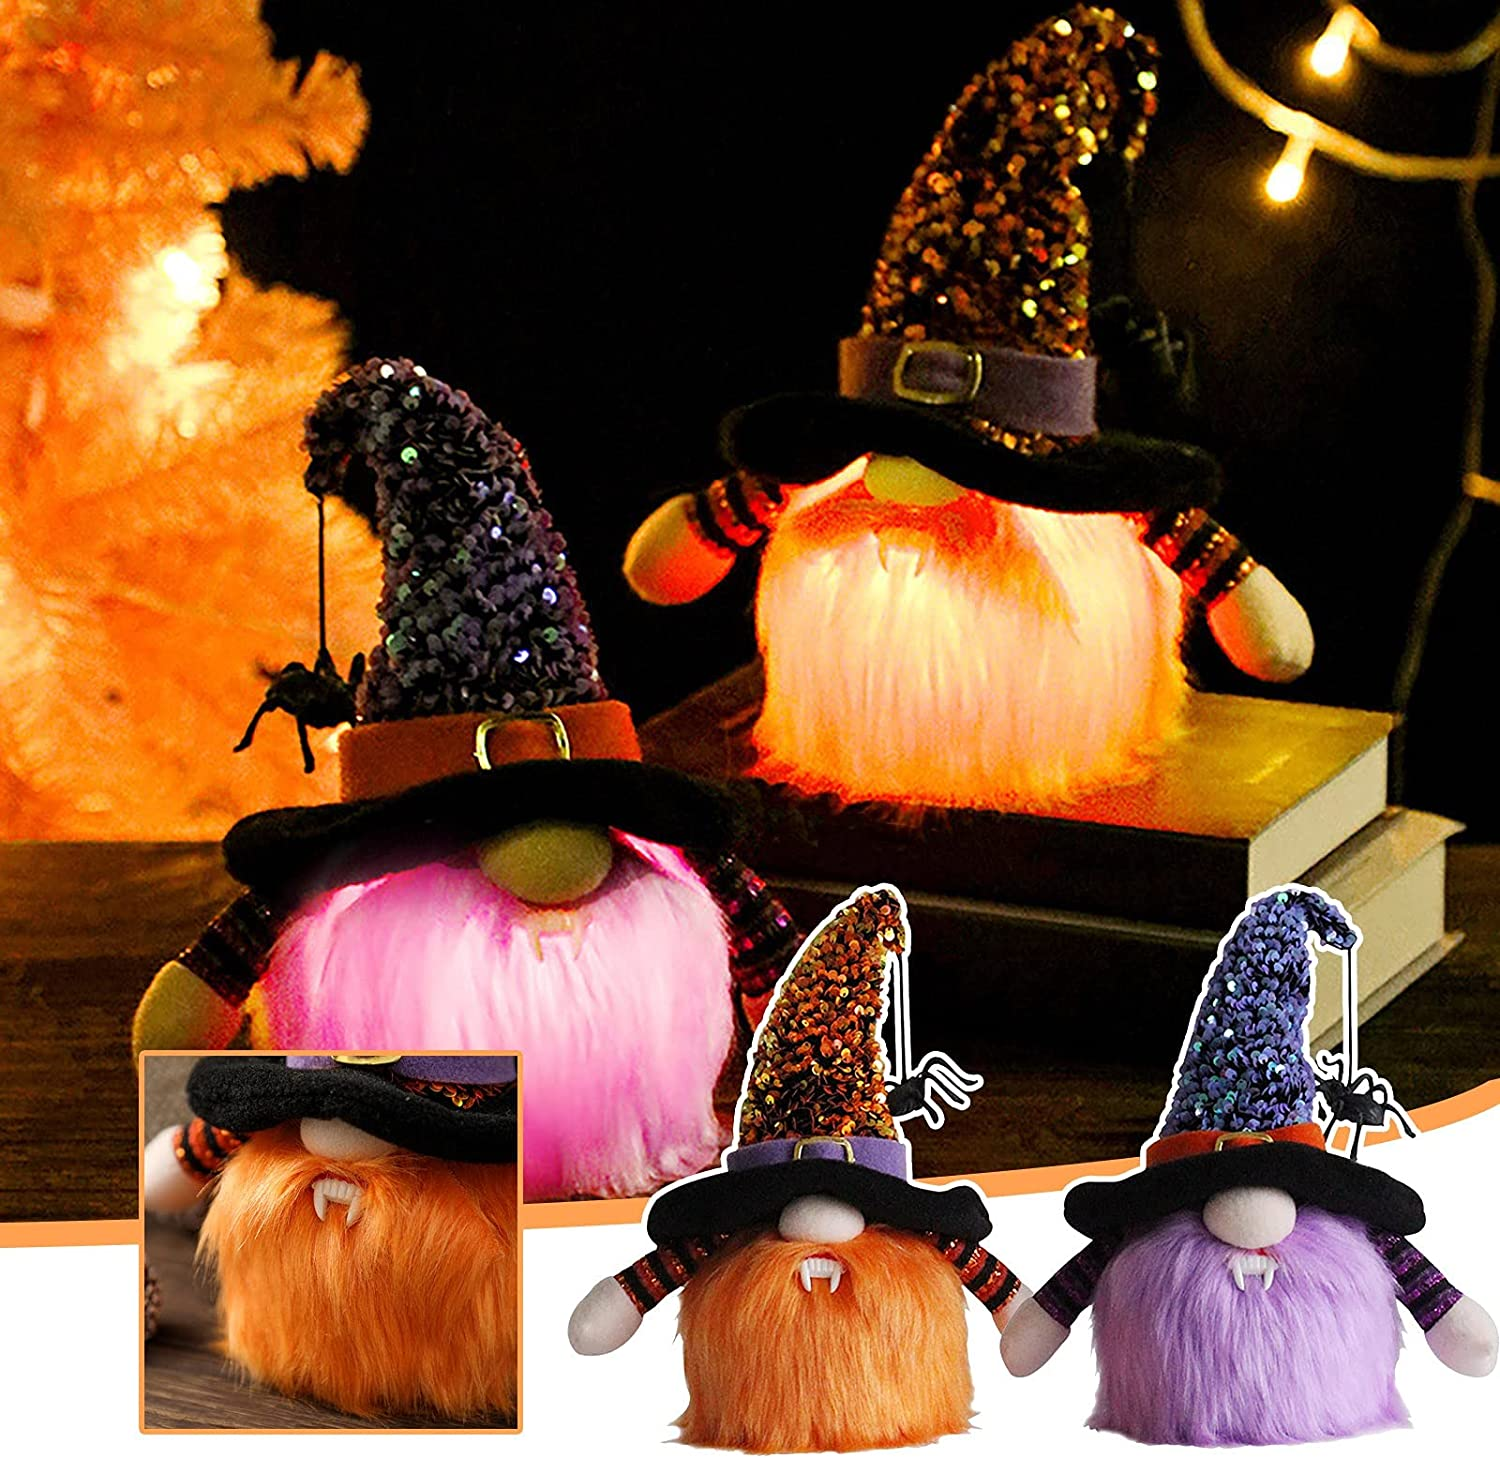 Yongjiesag Halloween Glow Spider Facele Decoration Max 48% OFF Discount is also underway Party Vampire